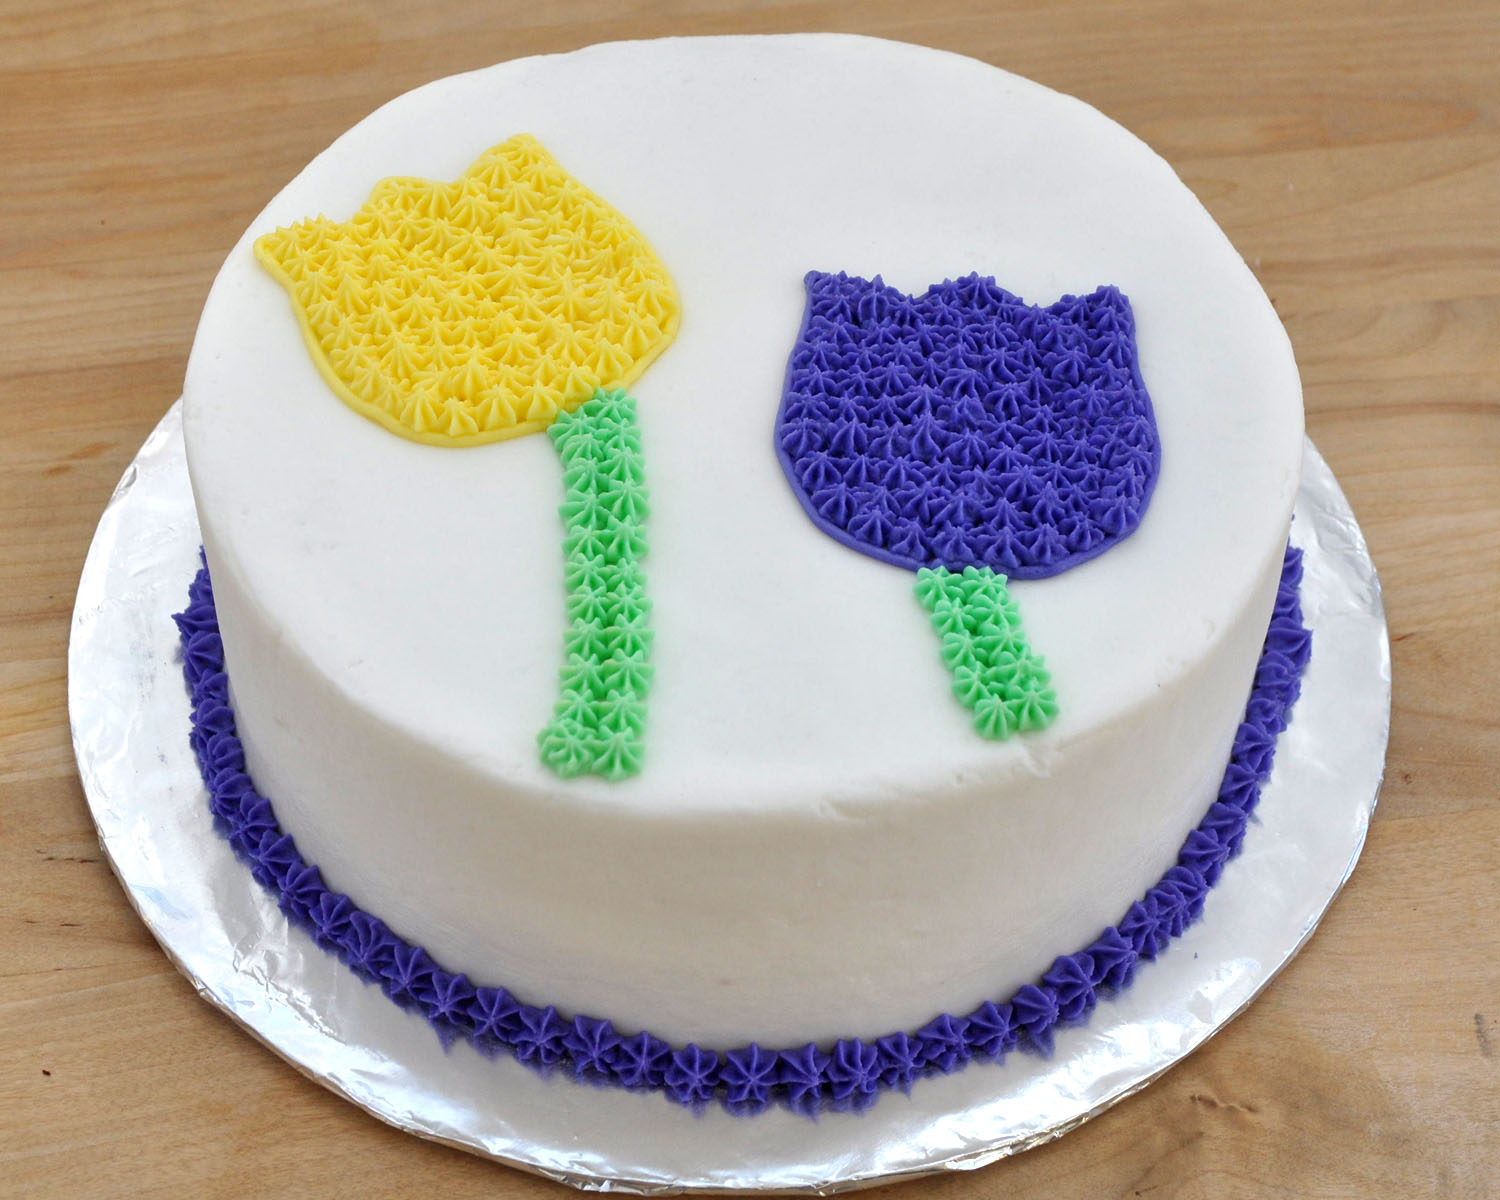 Beki Cook S Cake Blog Cake Decorating 101 Easy Birthday Cake